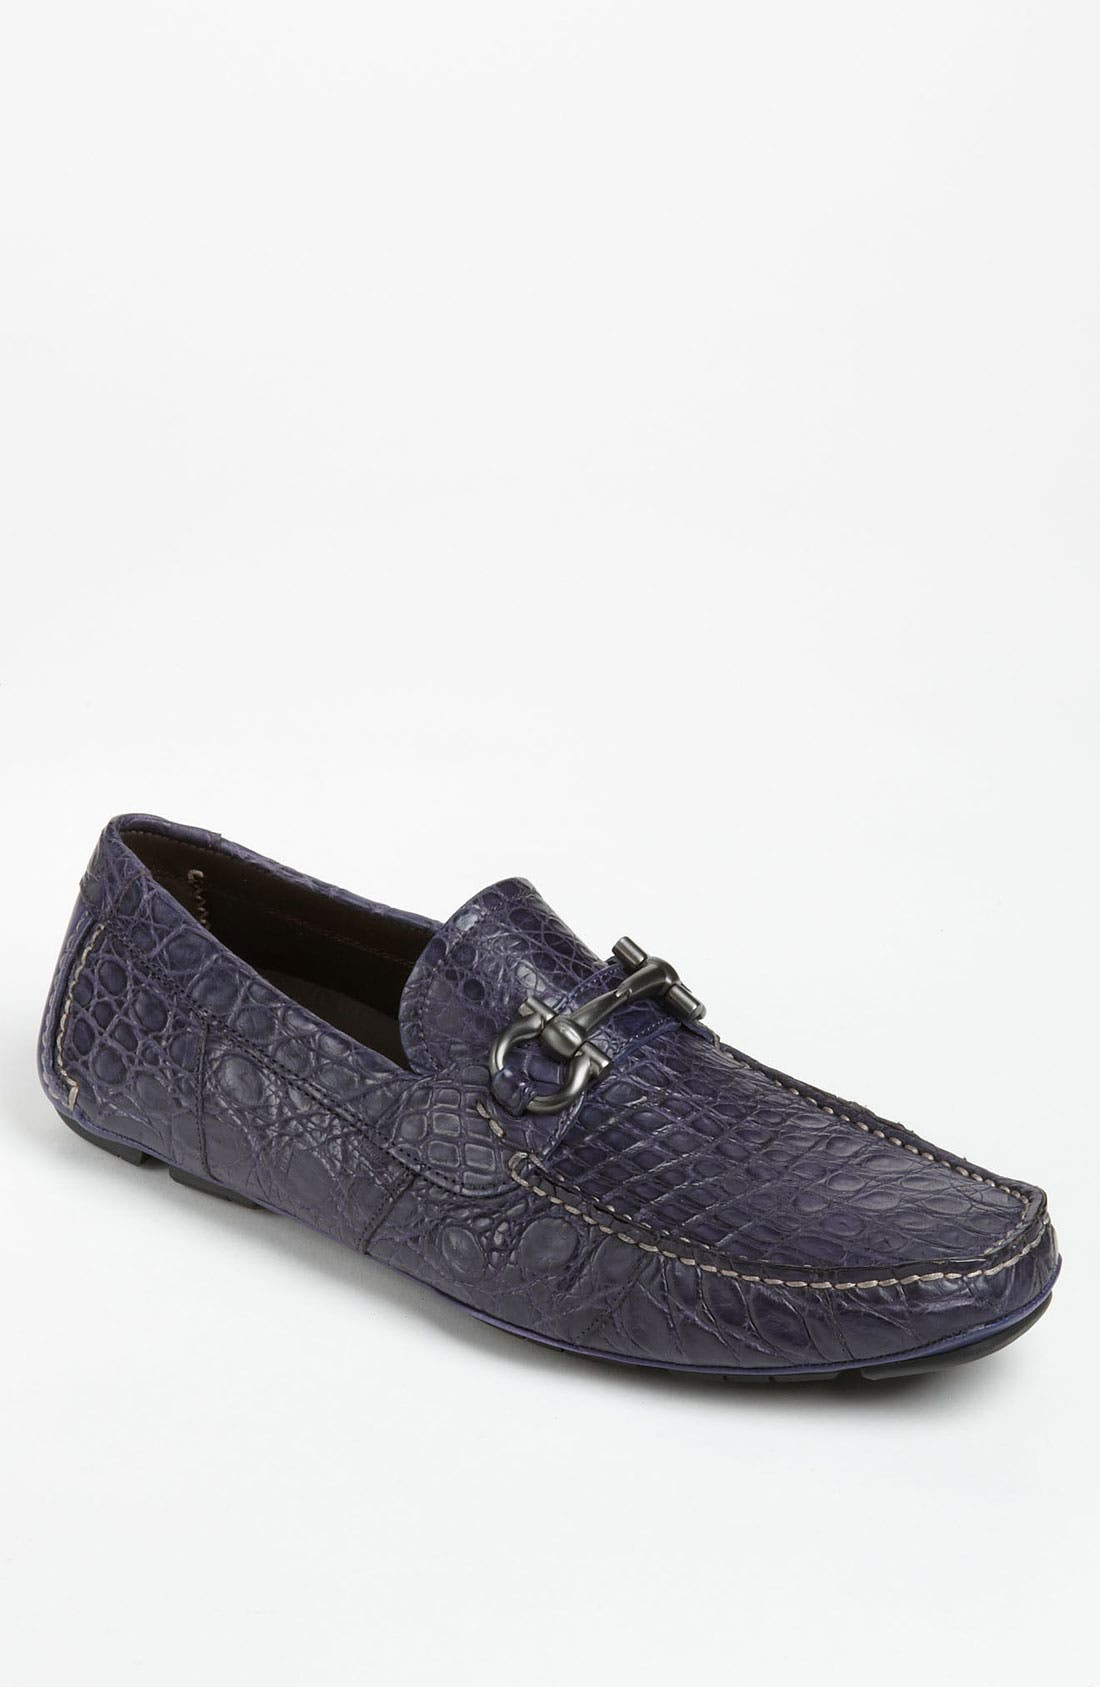 Alternate Image 1 Selected - Salvatore Ferragamo 'Parigi' Crocodile Driving Shoe